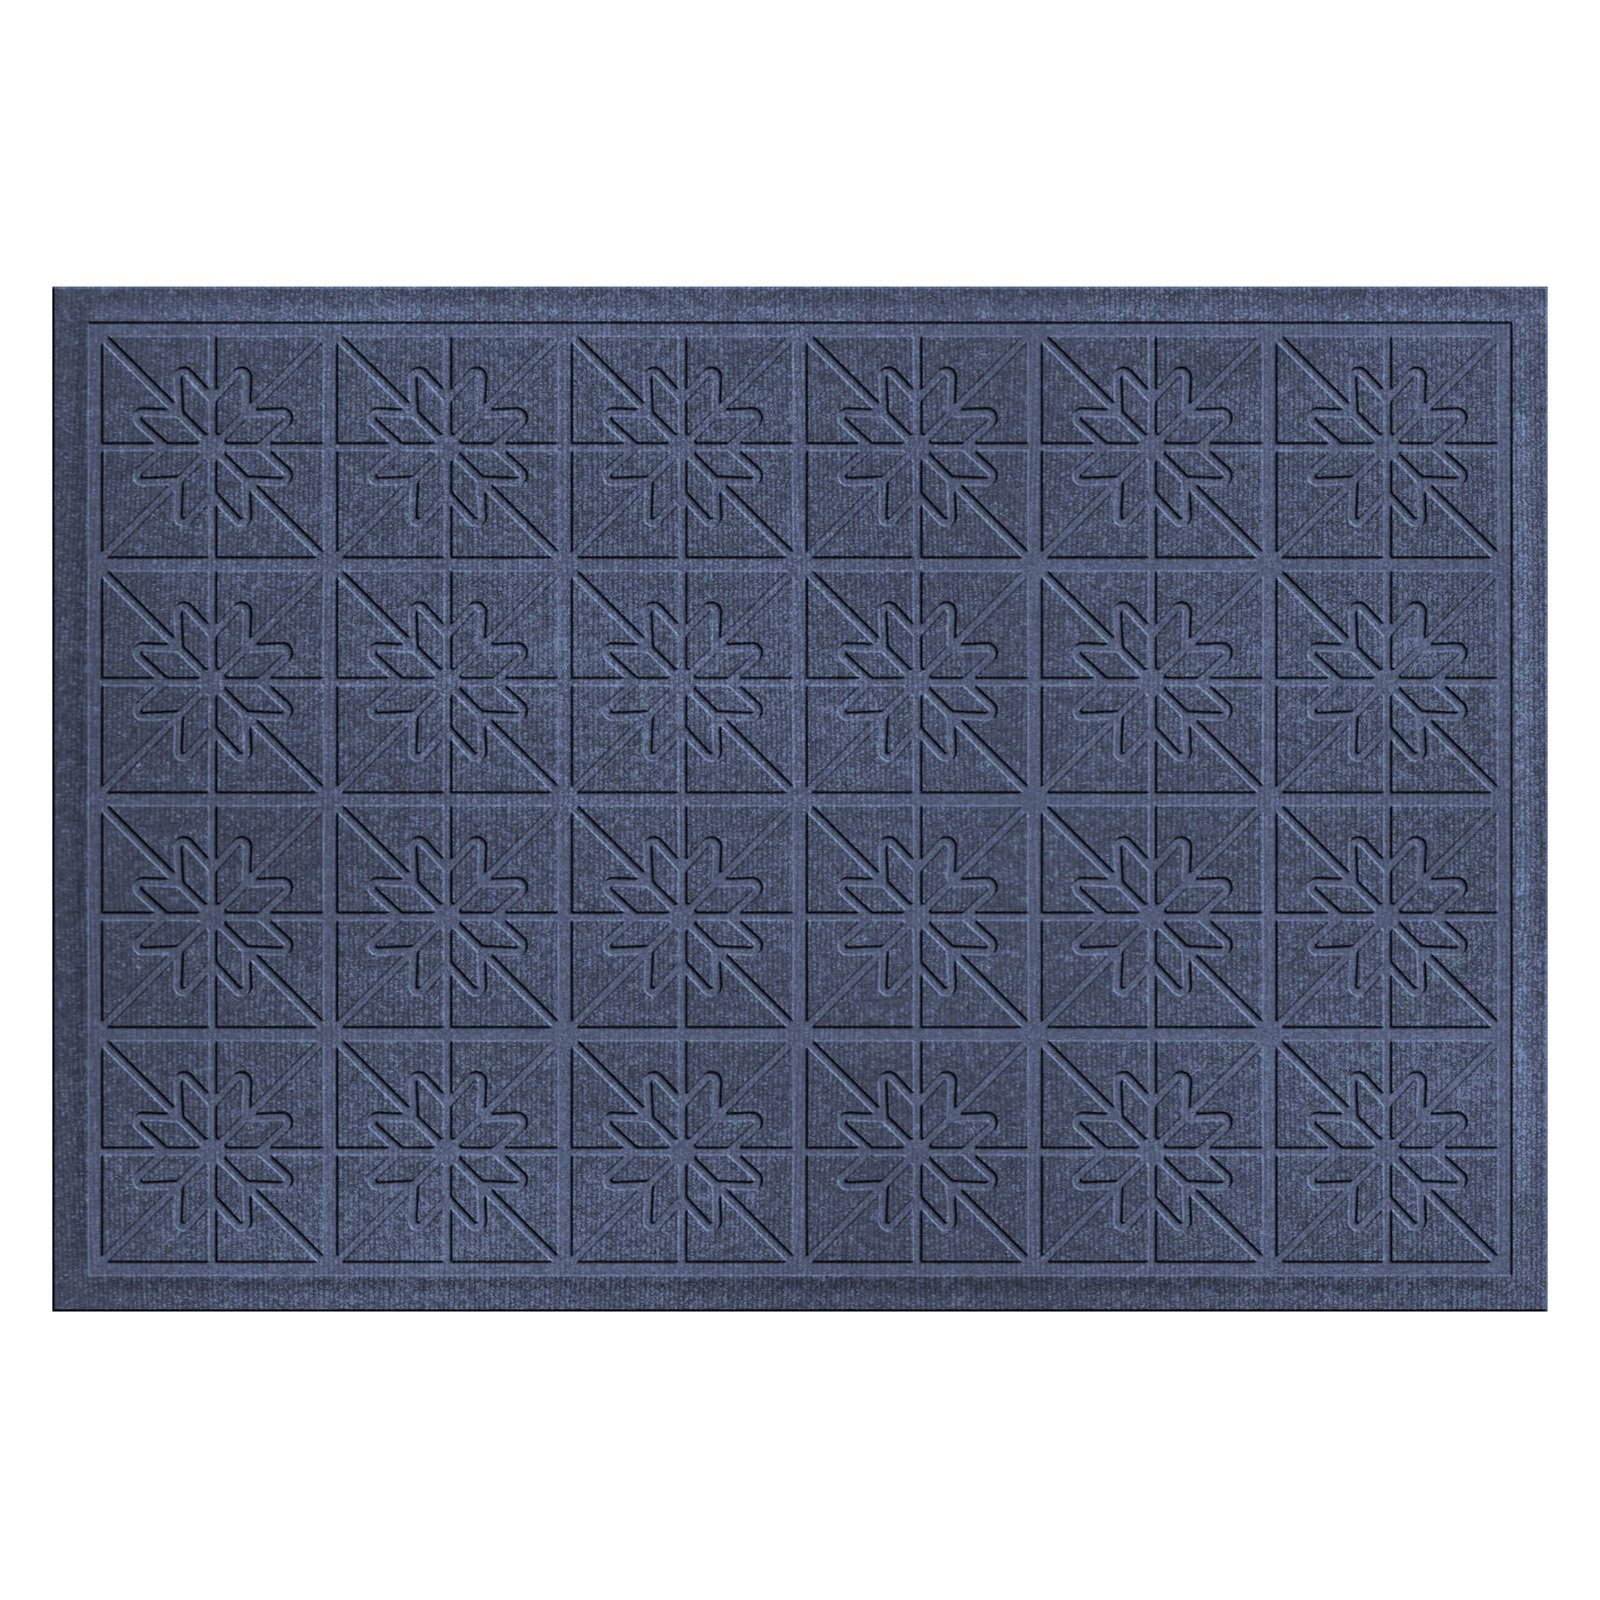 Bungalow Flooring Water Guard Star Quilt Indoor / Outdoor Mat